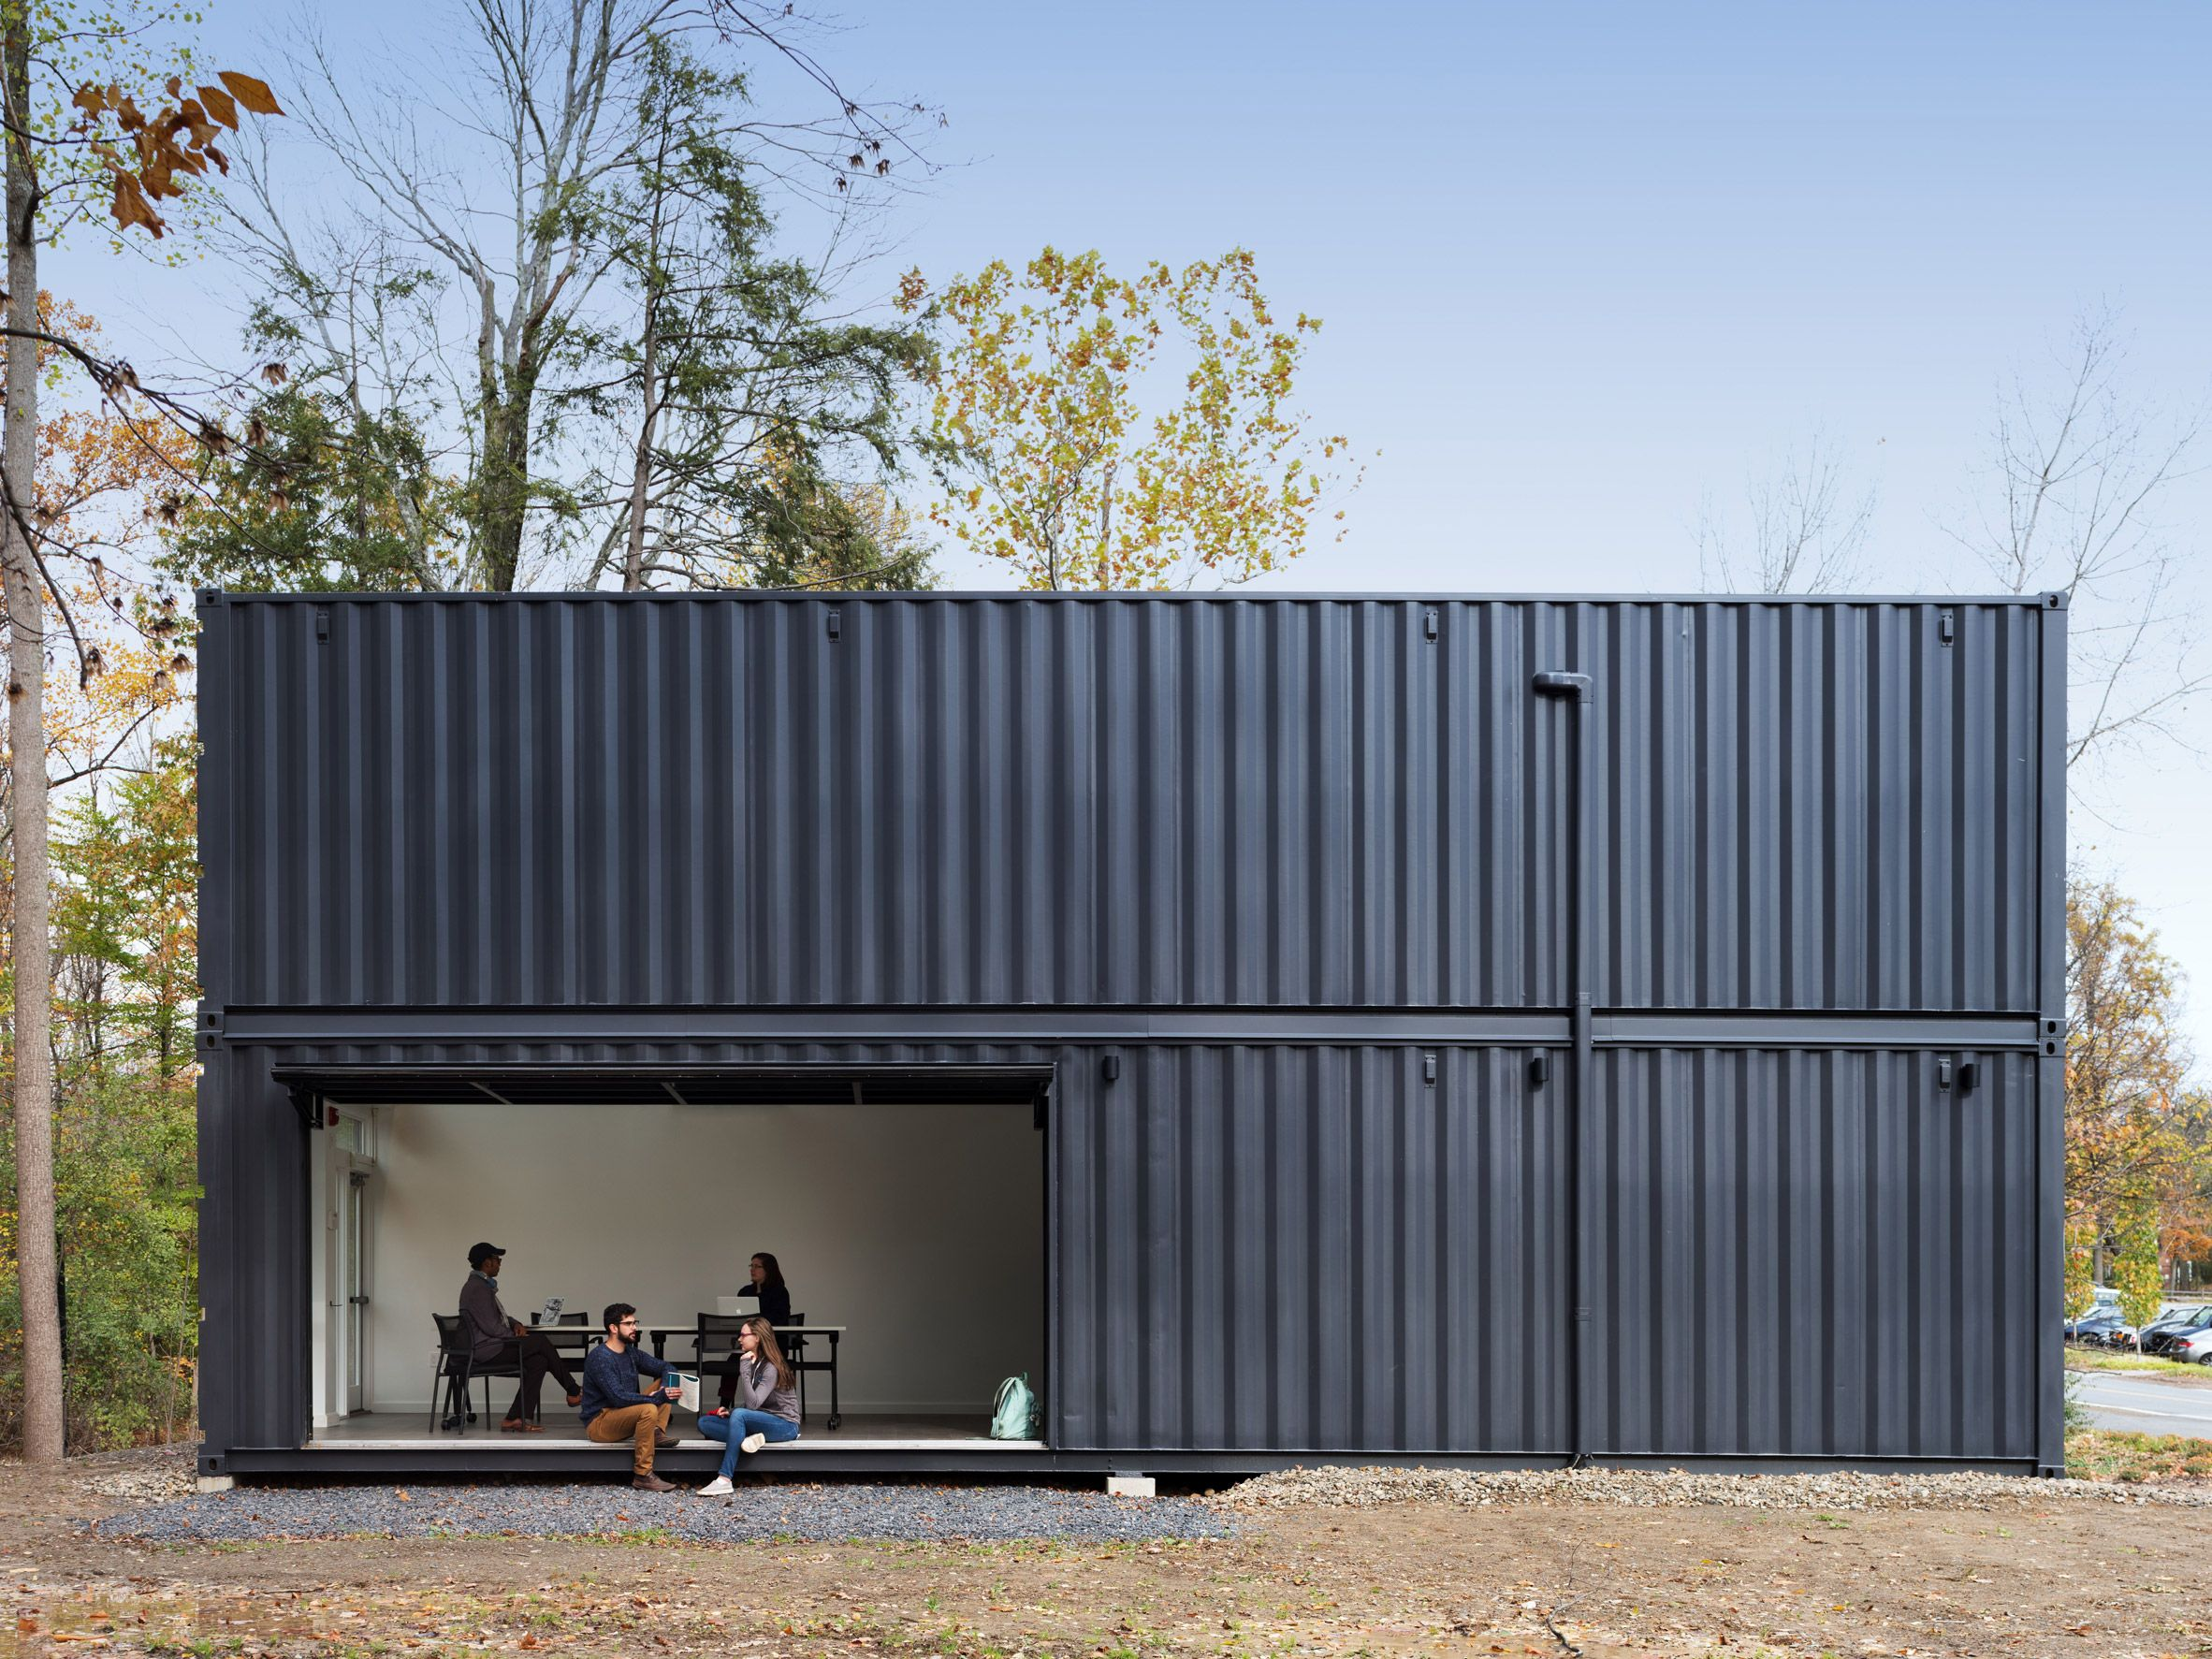 Container Haus Einrichten American Firm Mb Architecture Has Used Shipping Containers To